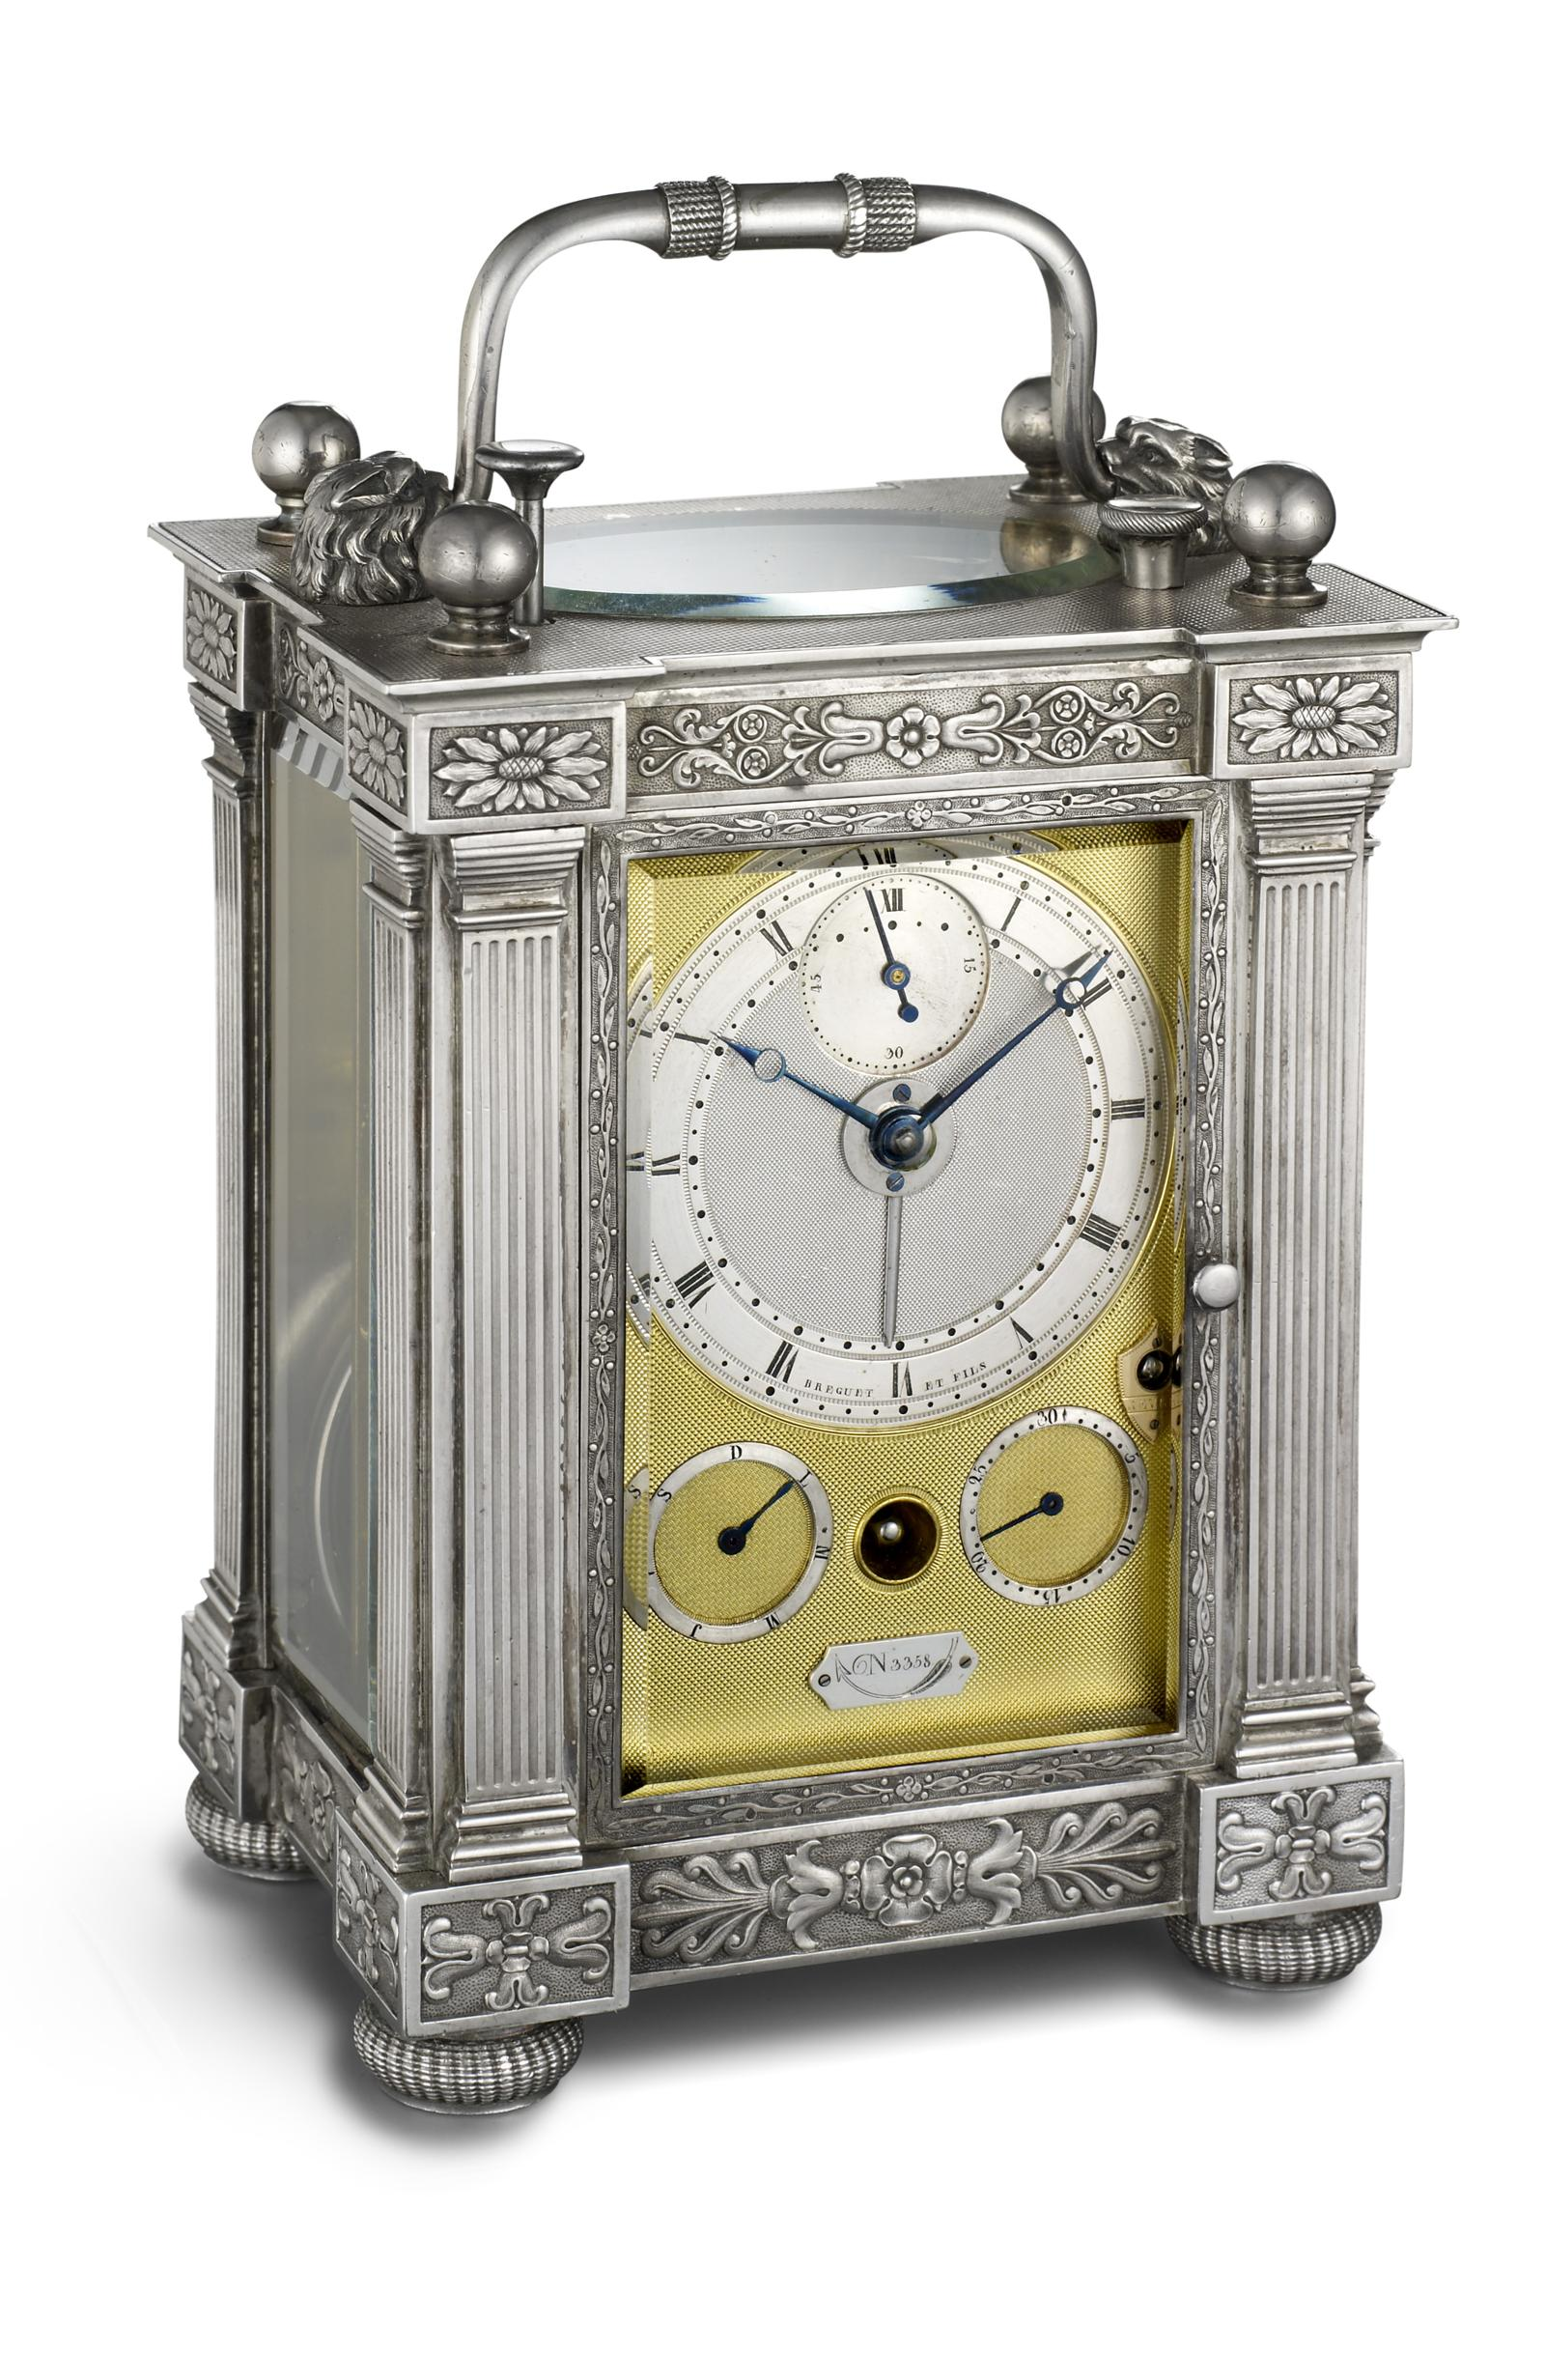 Breguet No. 3358 on display in Moscow Boutique